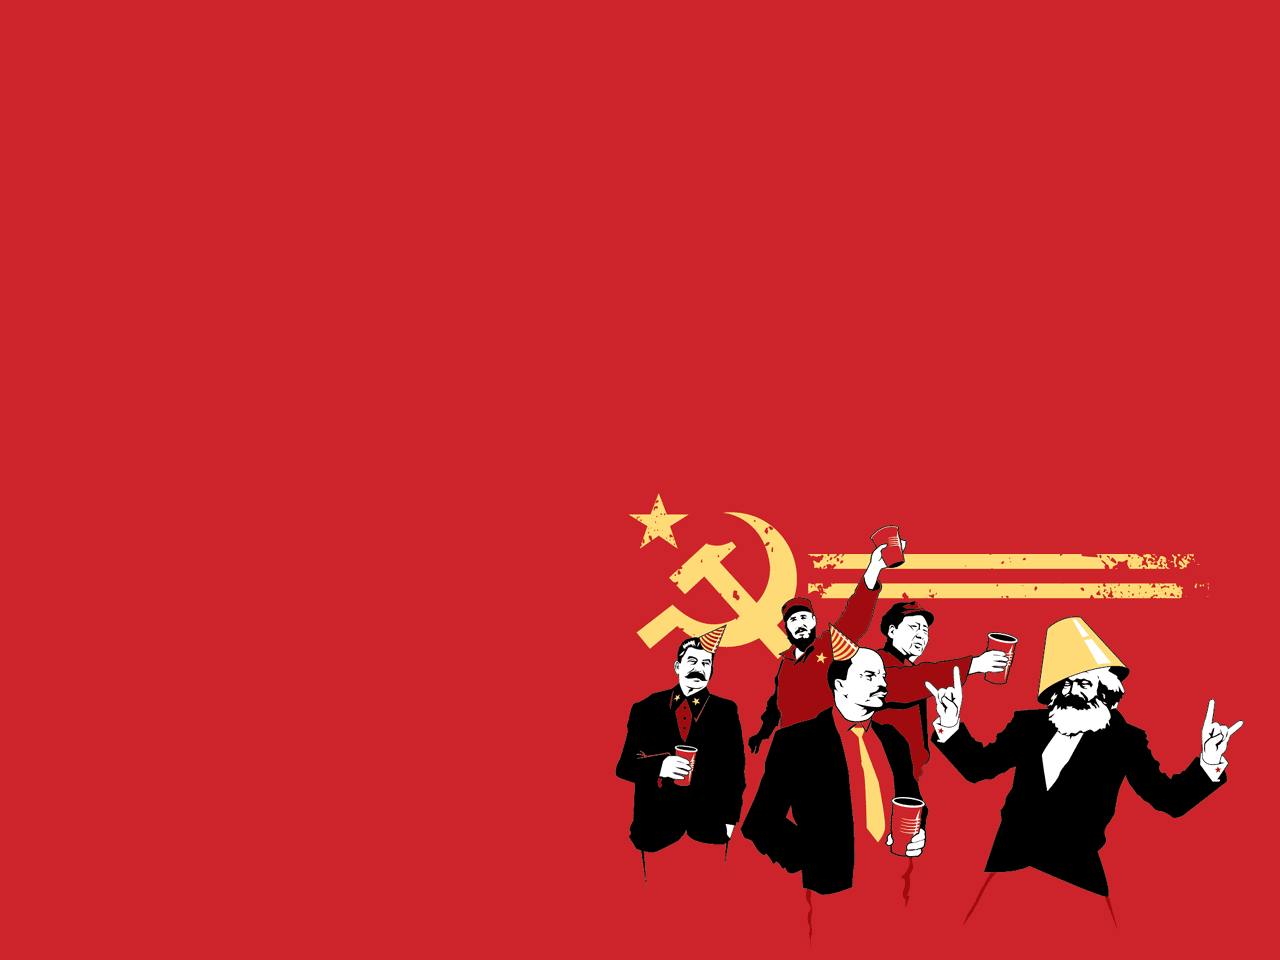 Communist Party! - Click To View Image